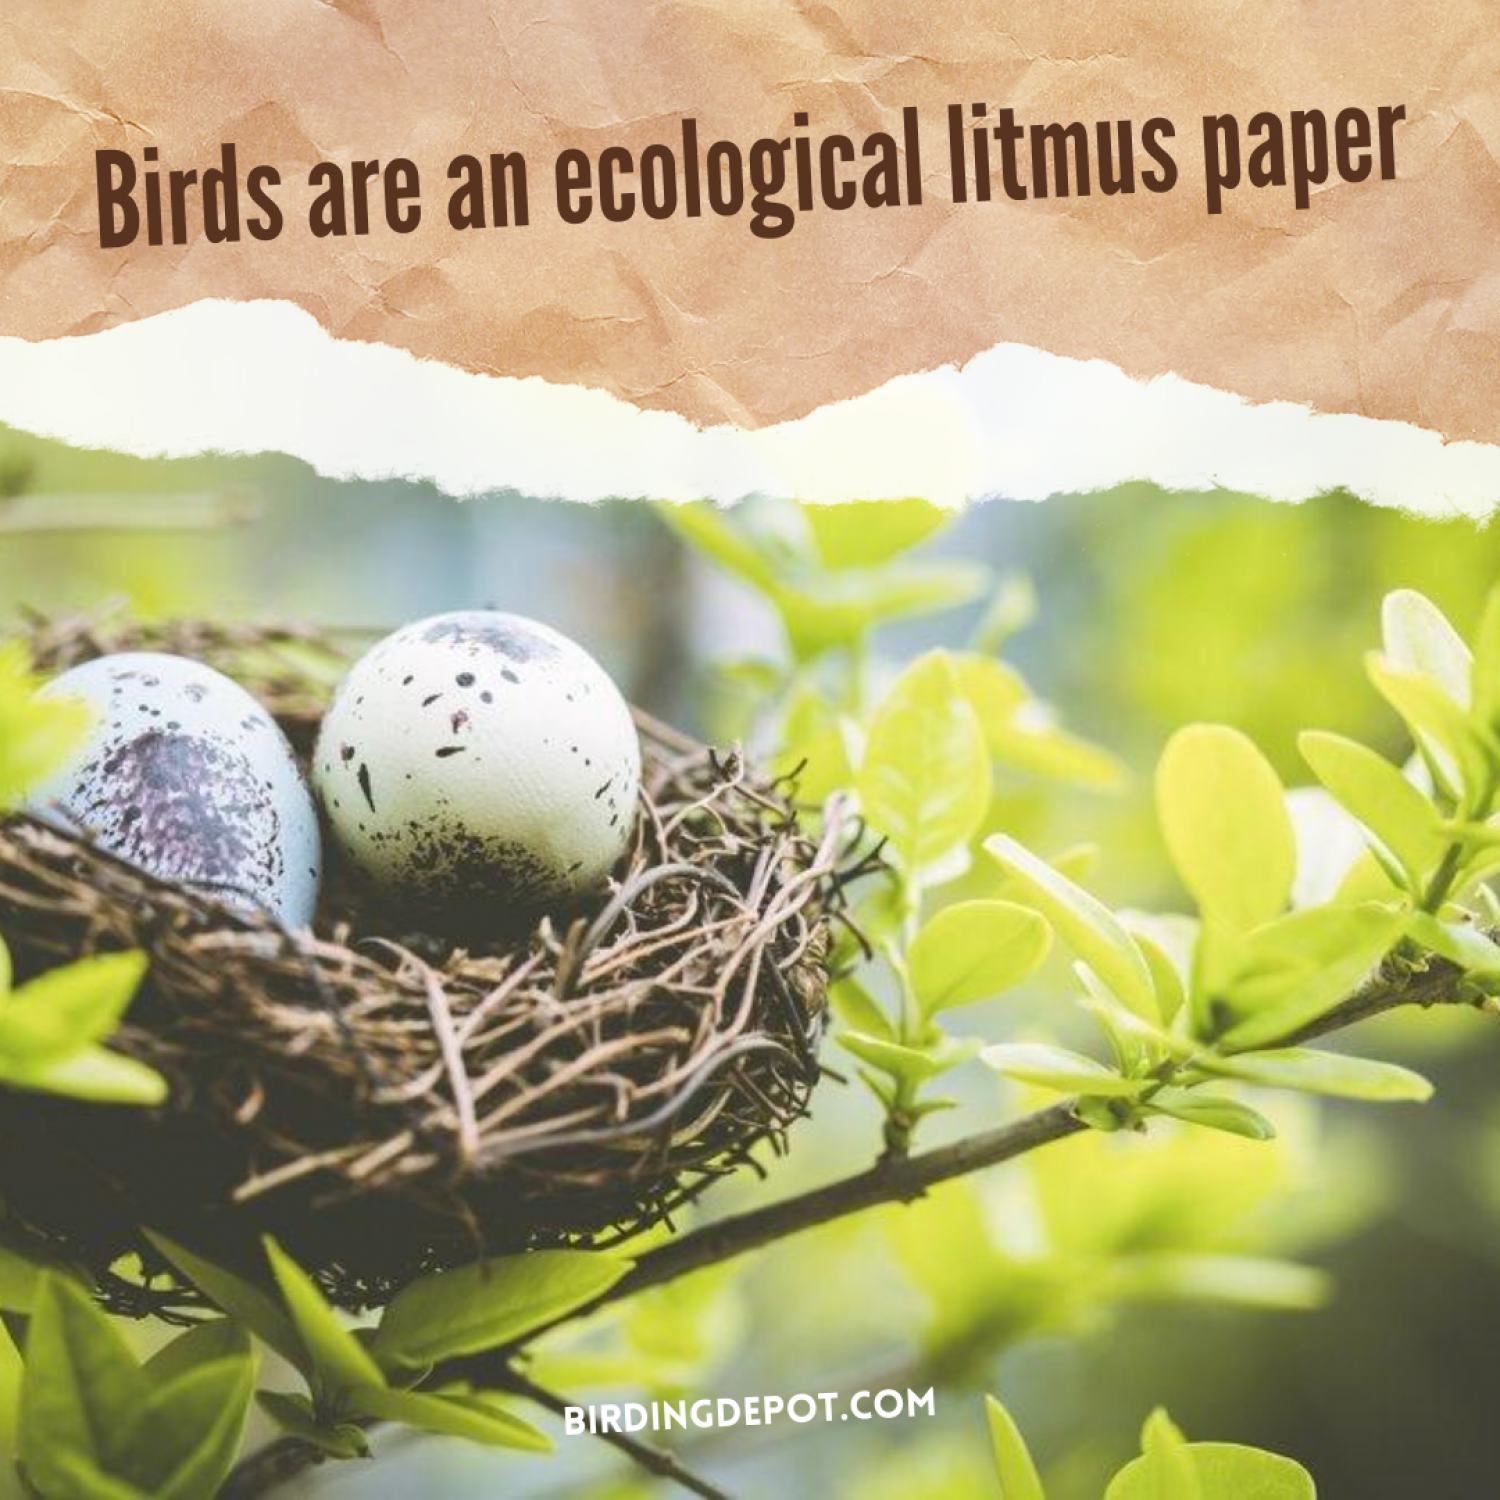 Birds are an ecological litmus paper Infographic